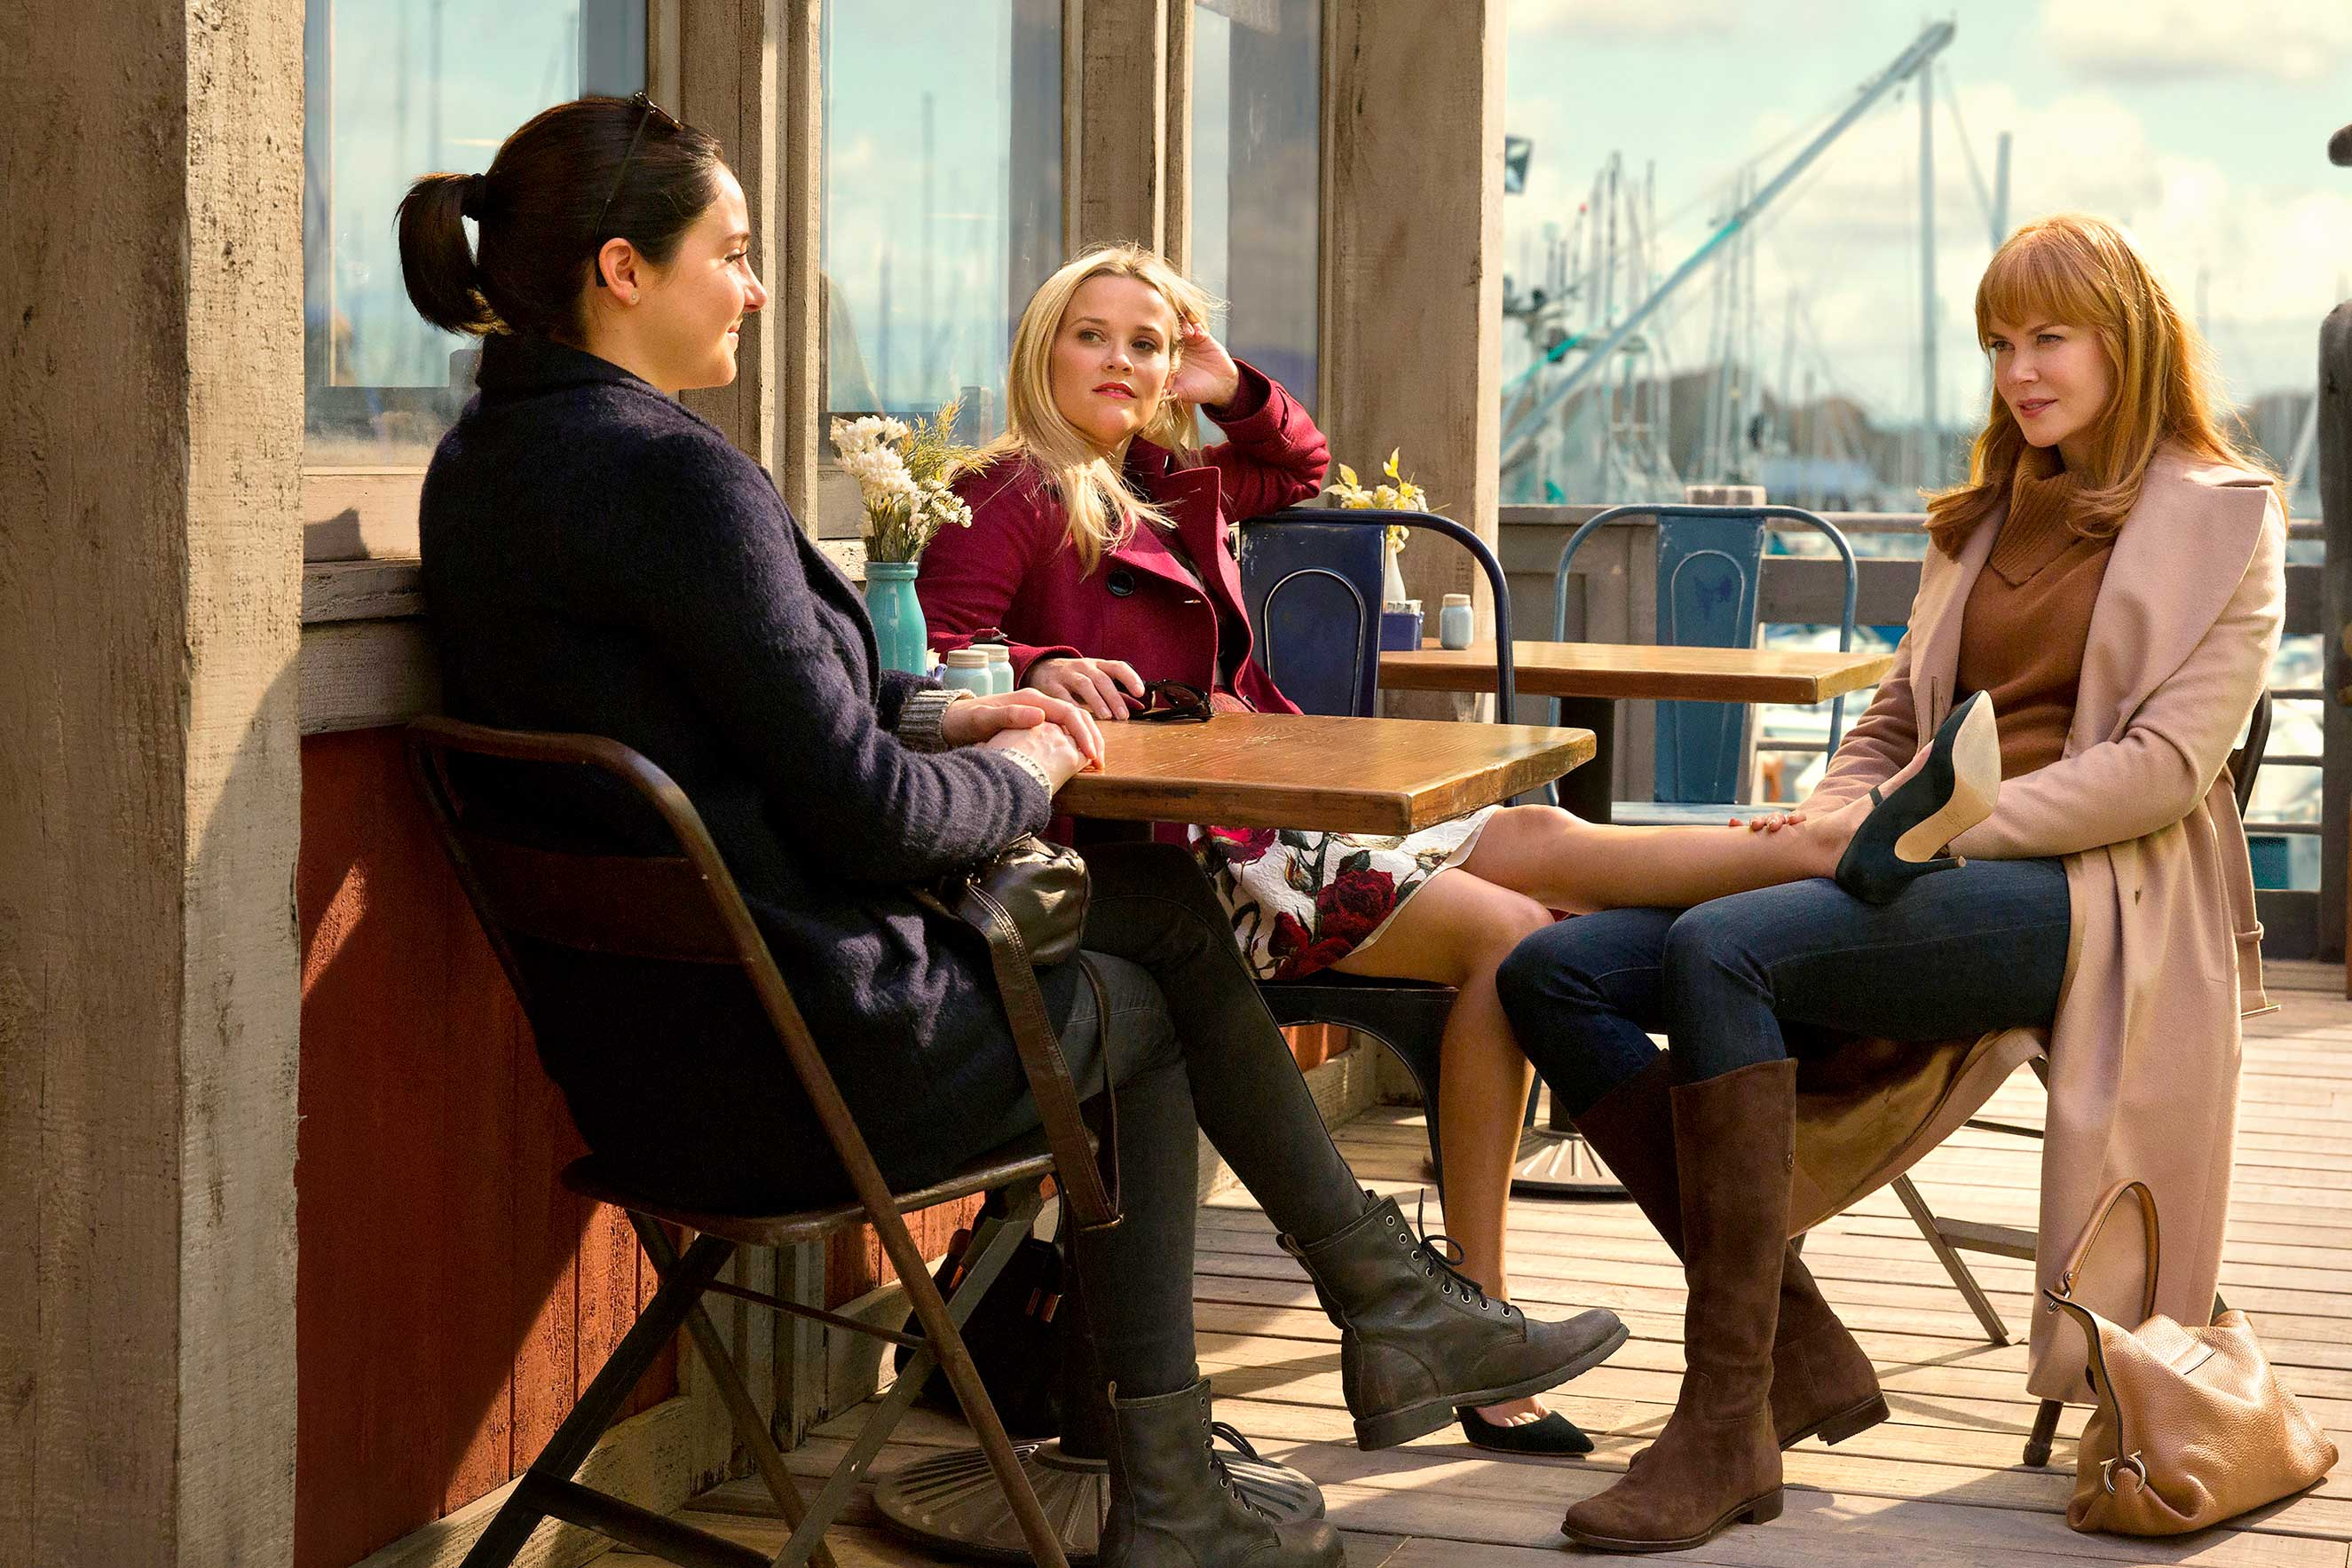 Woodley, Witherspoon and Kidman play women trying to open up to one another on Big Little Lies